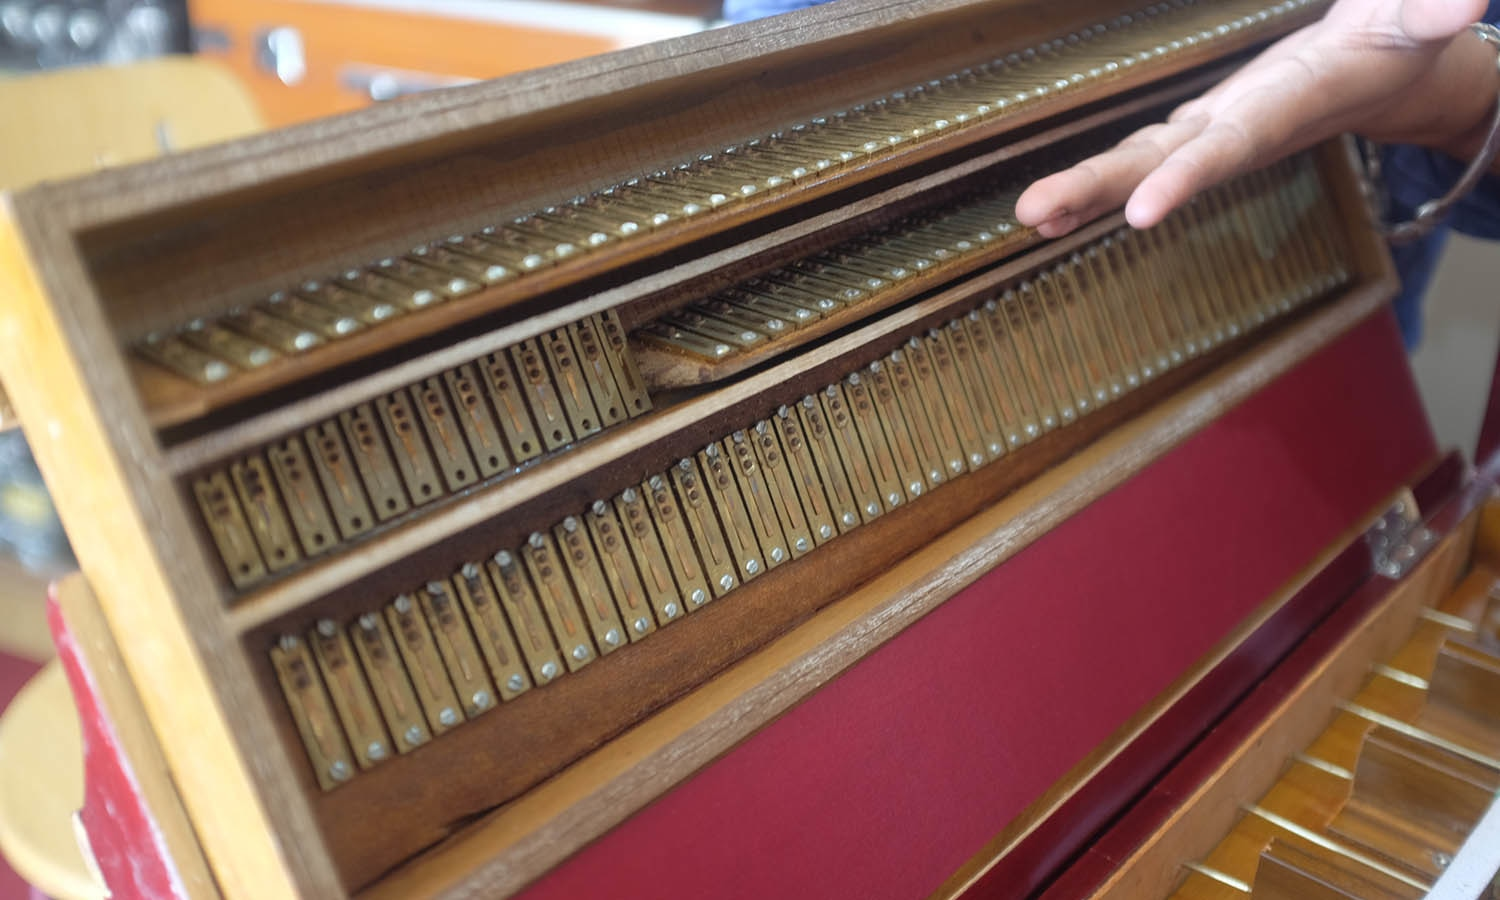 Waqar shows a delicate harmonium which was manufactured in Delhi.